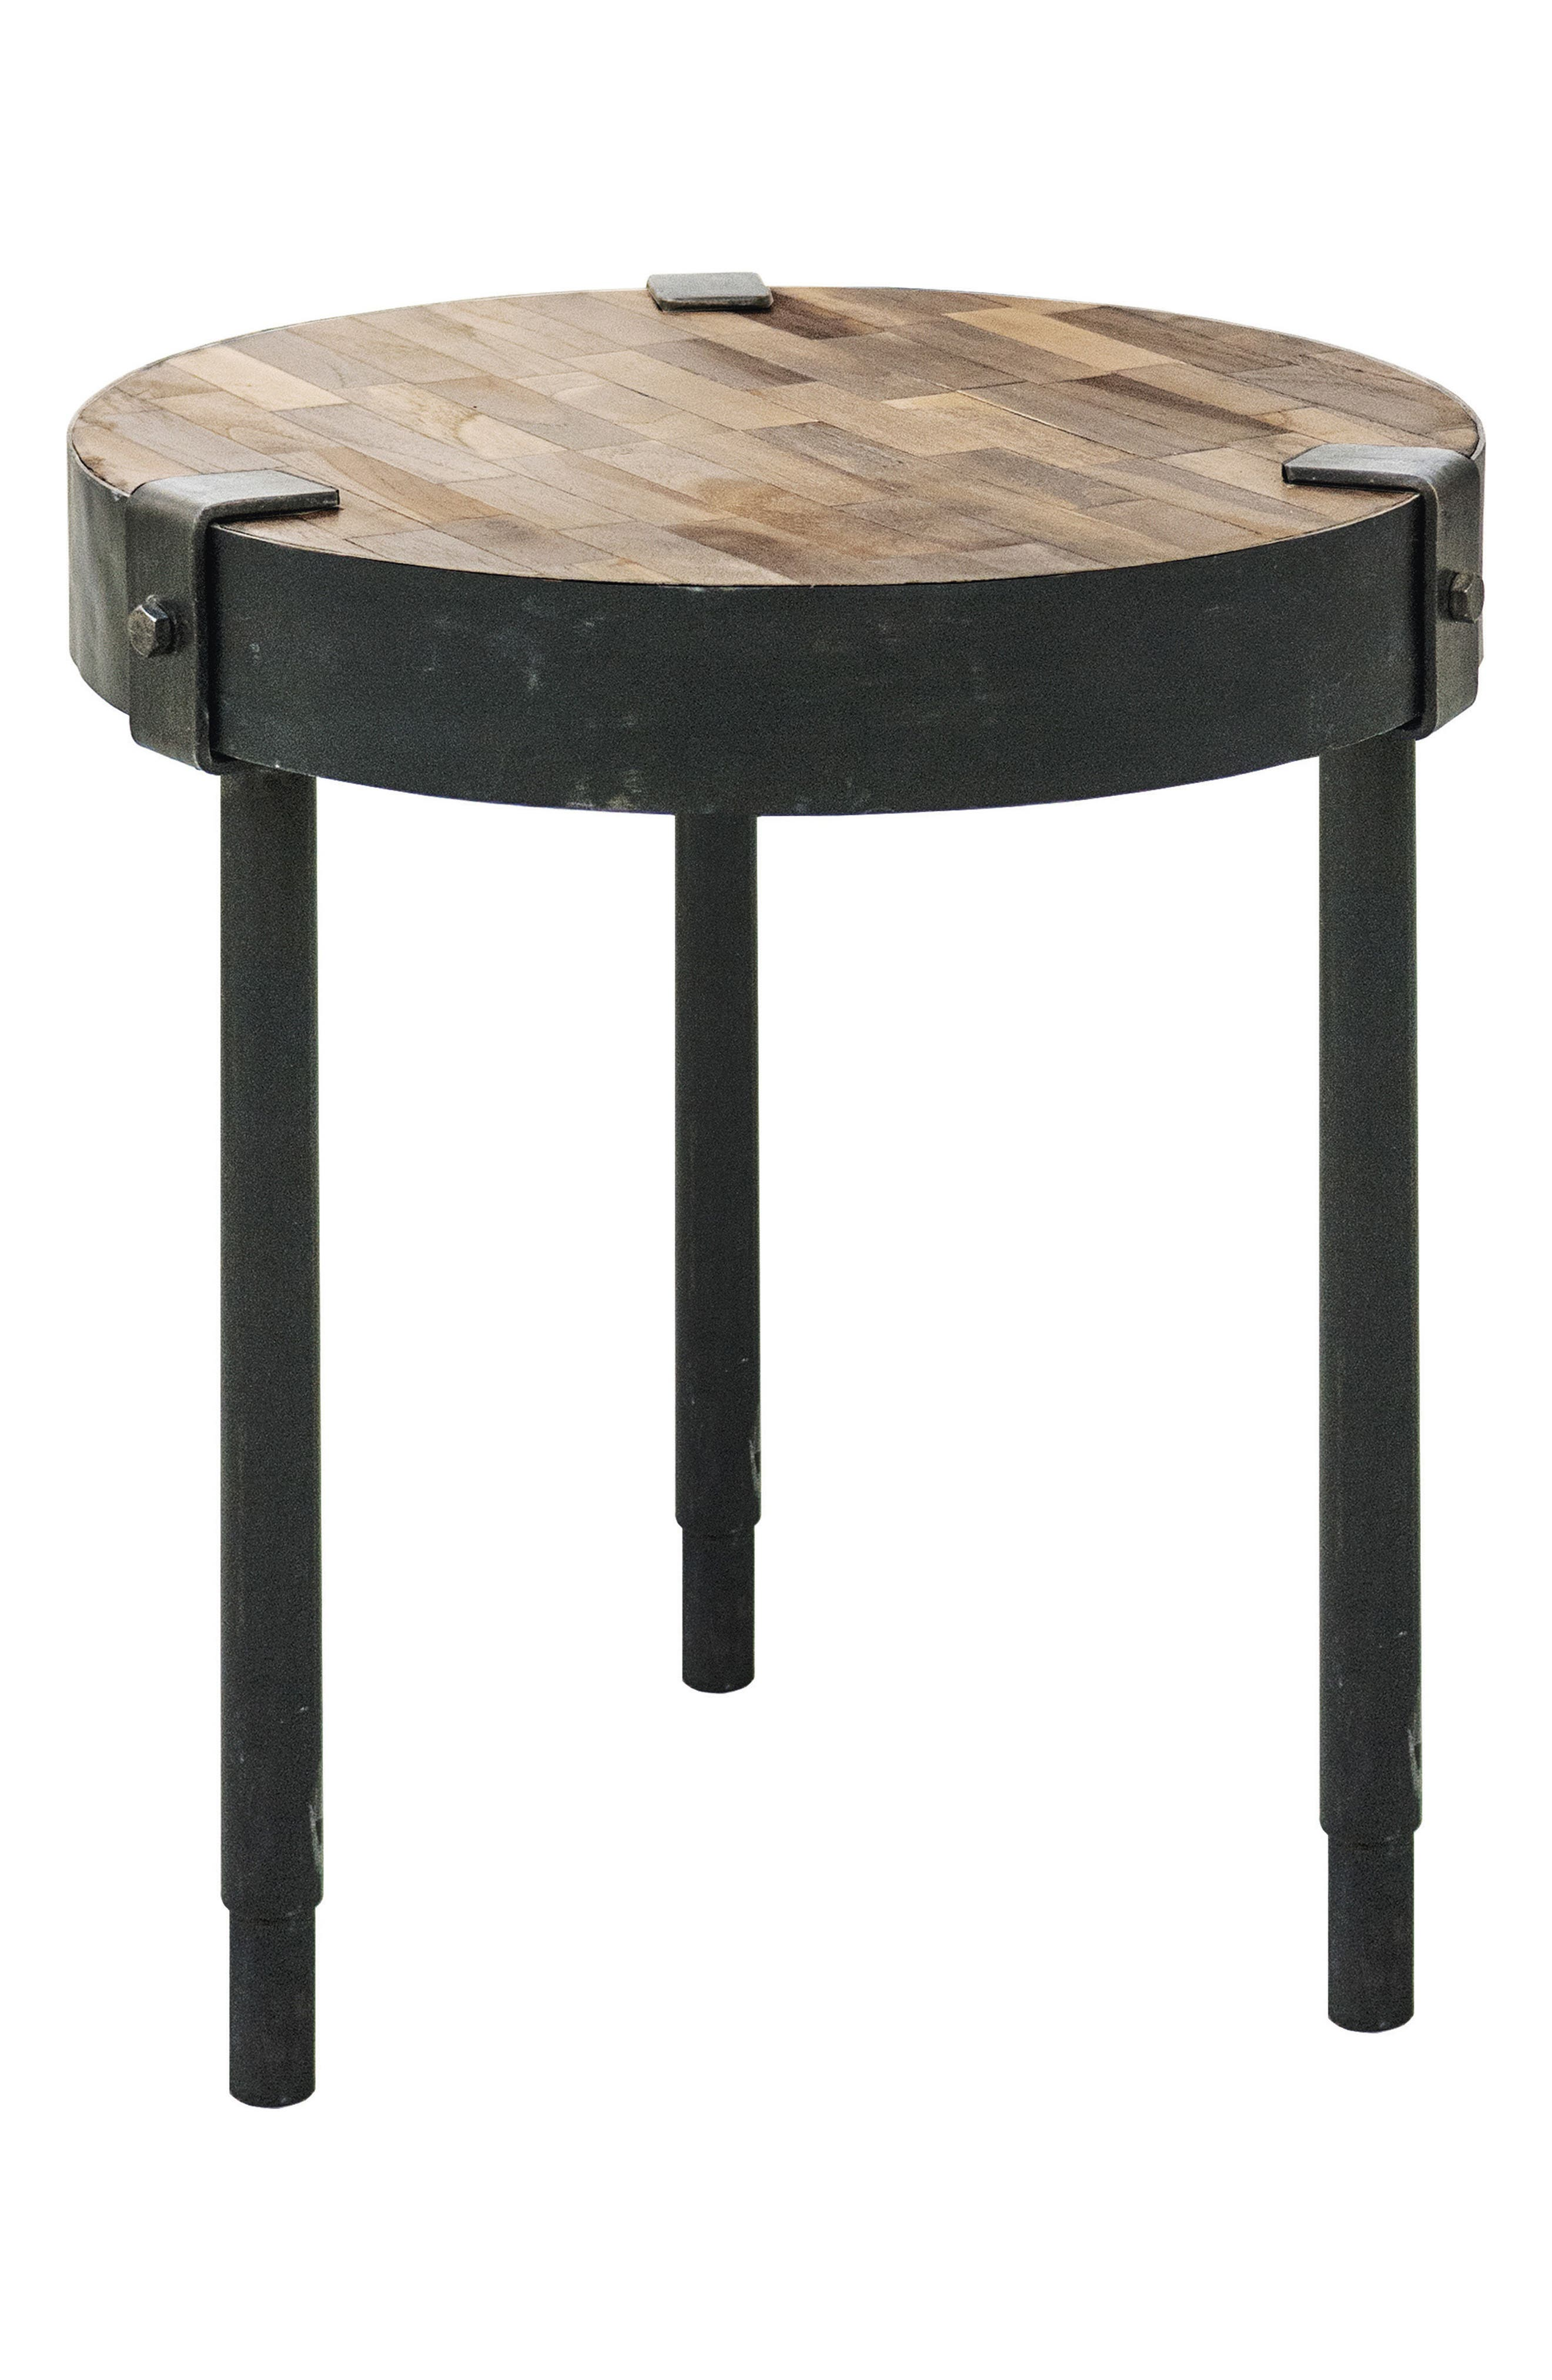 Seebach Metal & Wood Accent Table,                         Main,                         color, Rusted Metal/ Weathered Wood